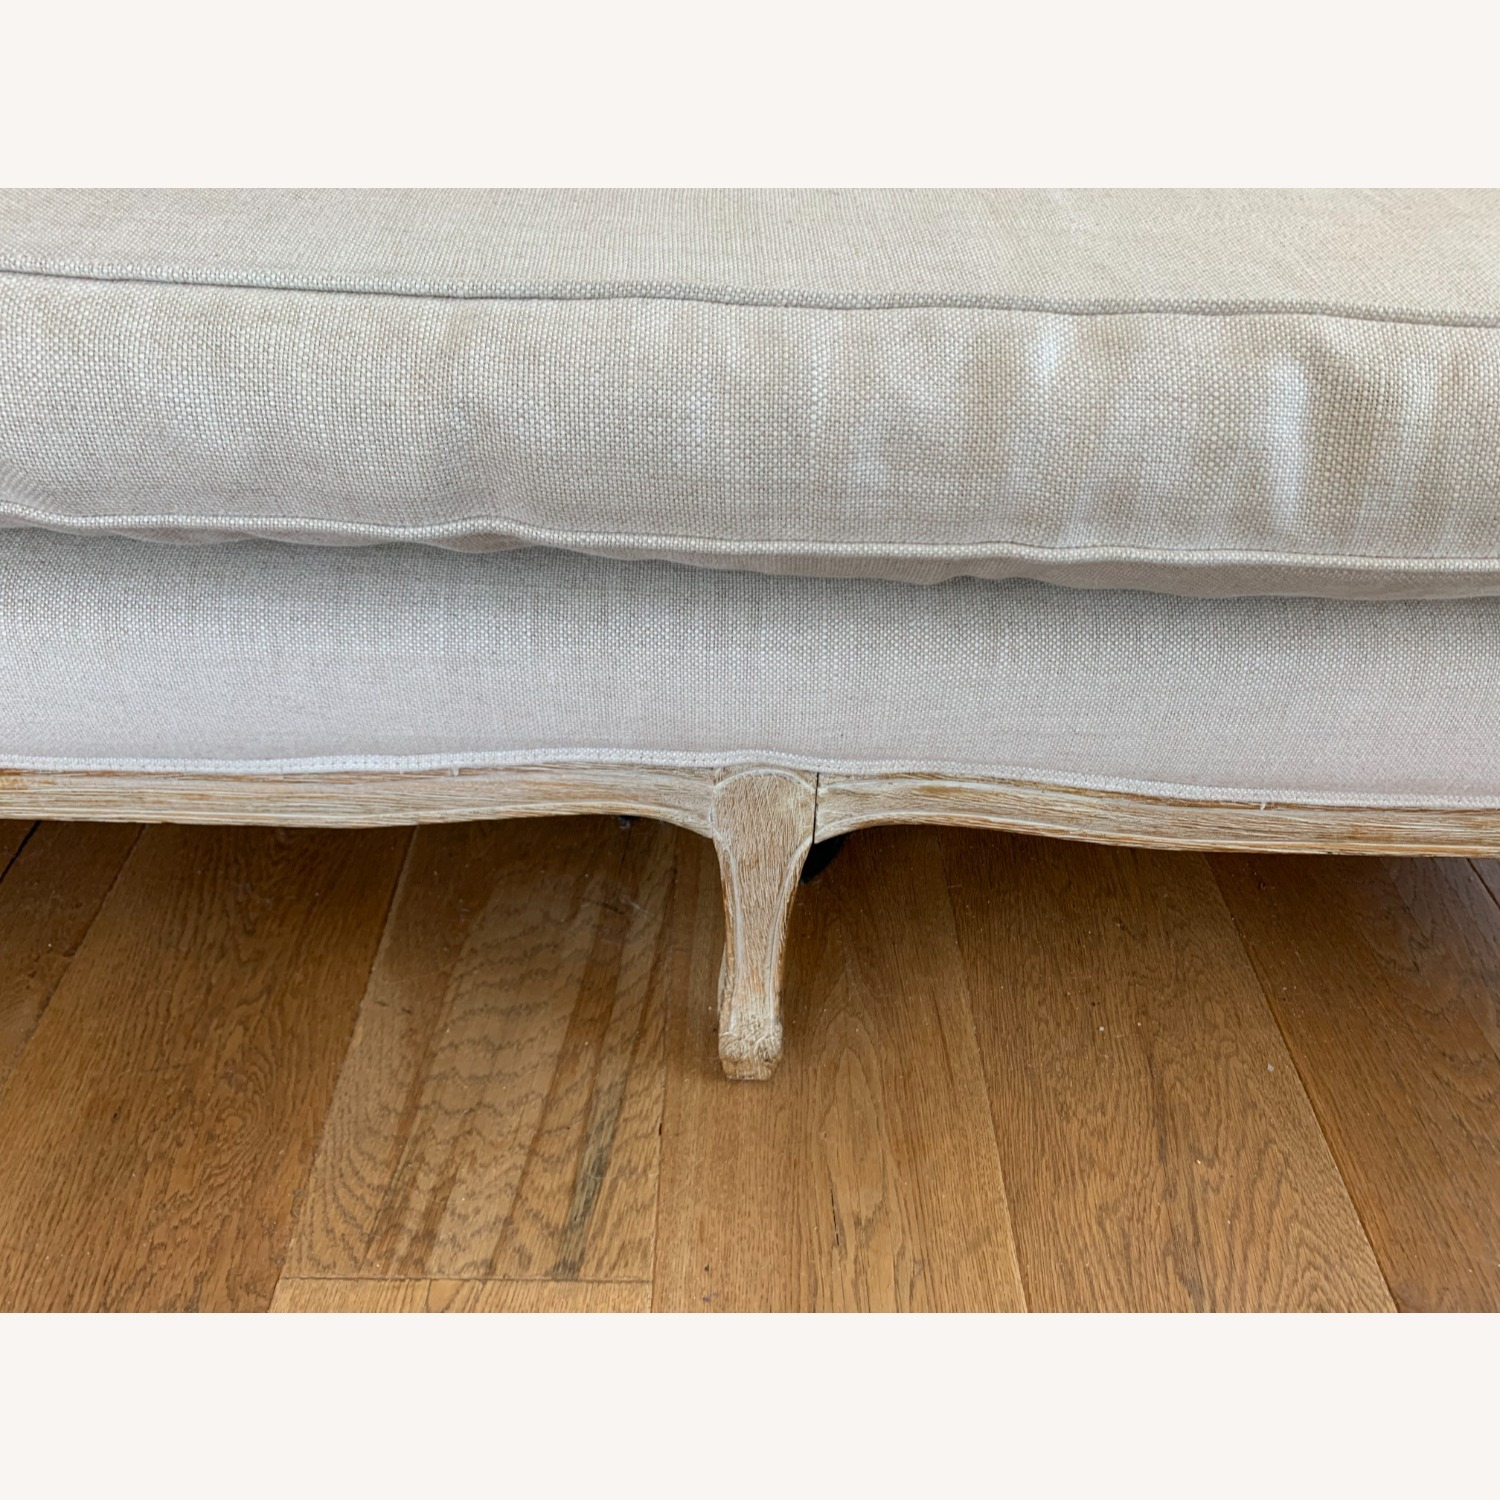 Restoration Hardware Vintage 2 Seater Sofa - image-3